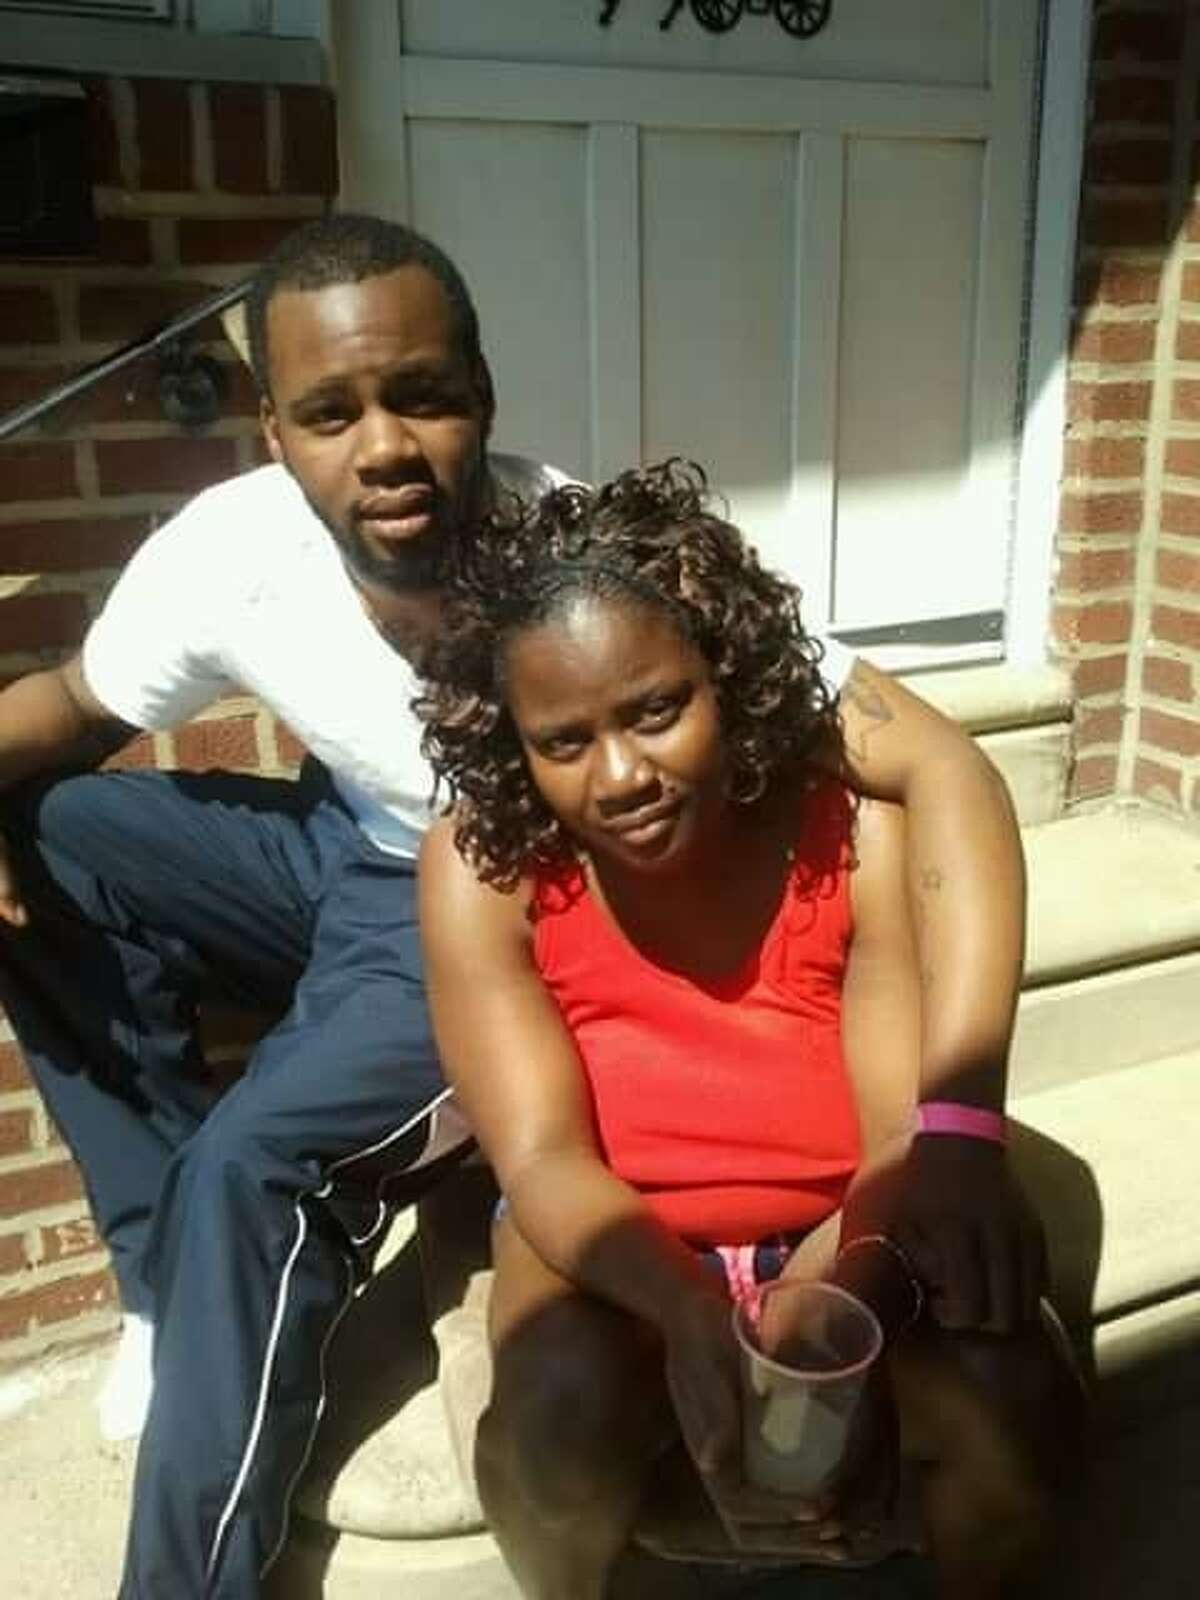 A picture of Maxine Gooden, 43, of Myano Lane in Stamford, taken with her oldest son Jordan Gooden, this year. Gooden was shot and killed in Lione Park Monday night.